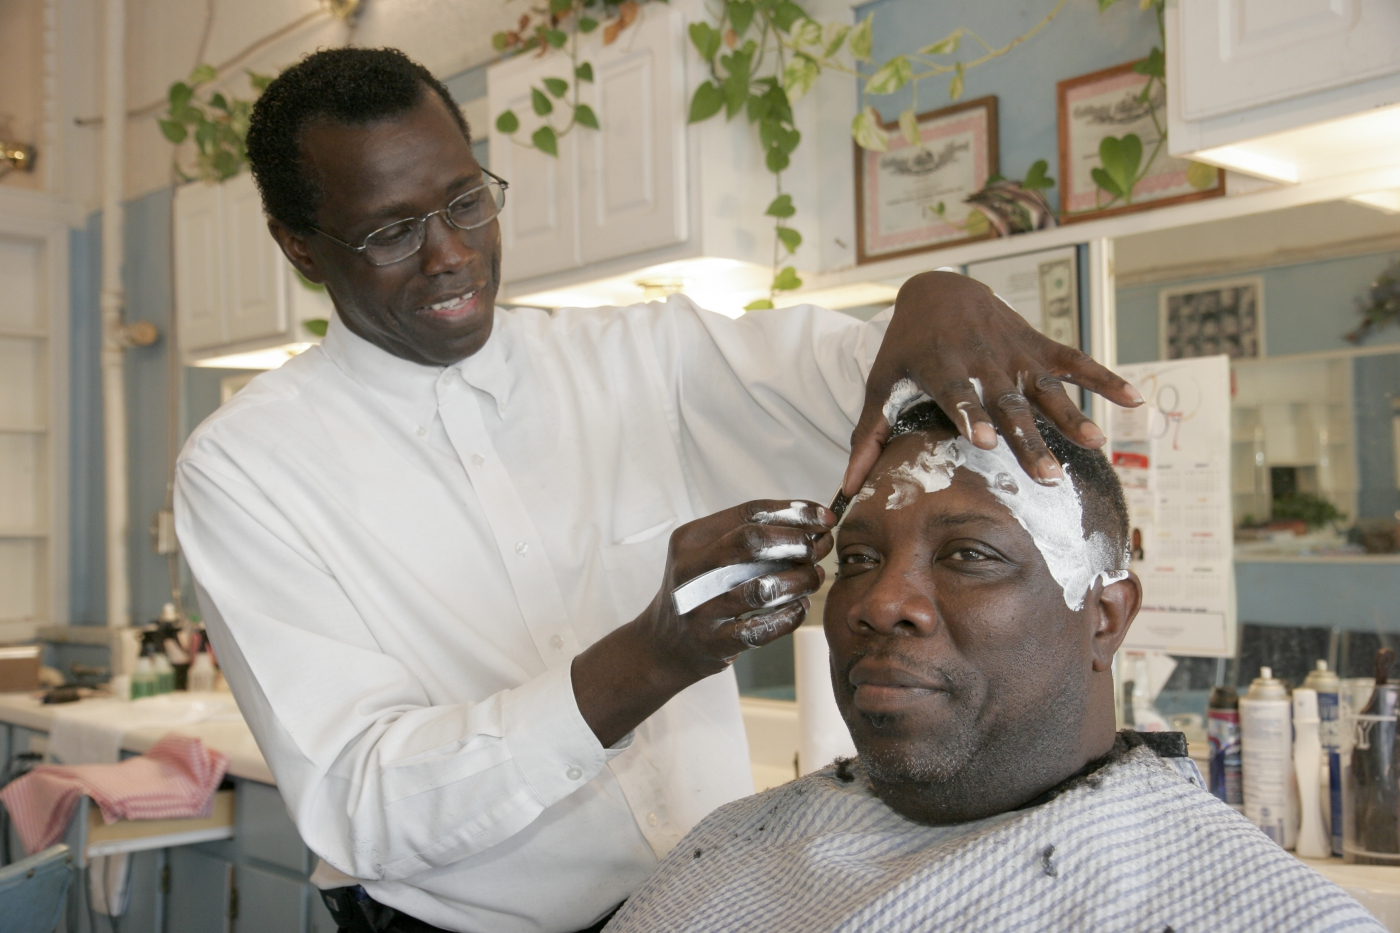 Get a hair cut in the city's 4th Avenue, an historic black business district that also includes restaurants and the Alabama Jazz Hall of Fame.